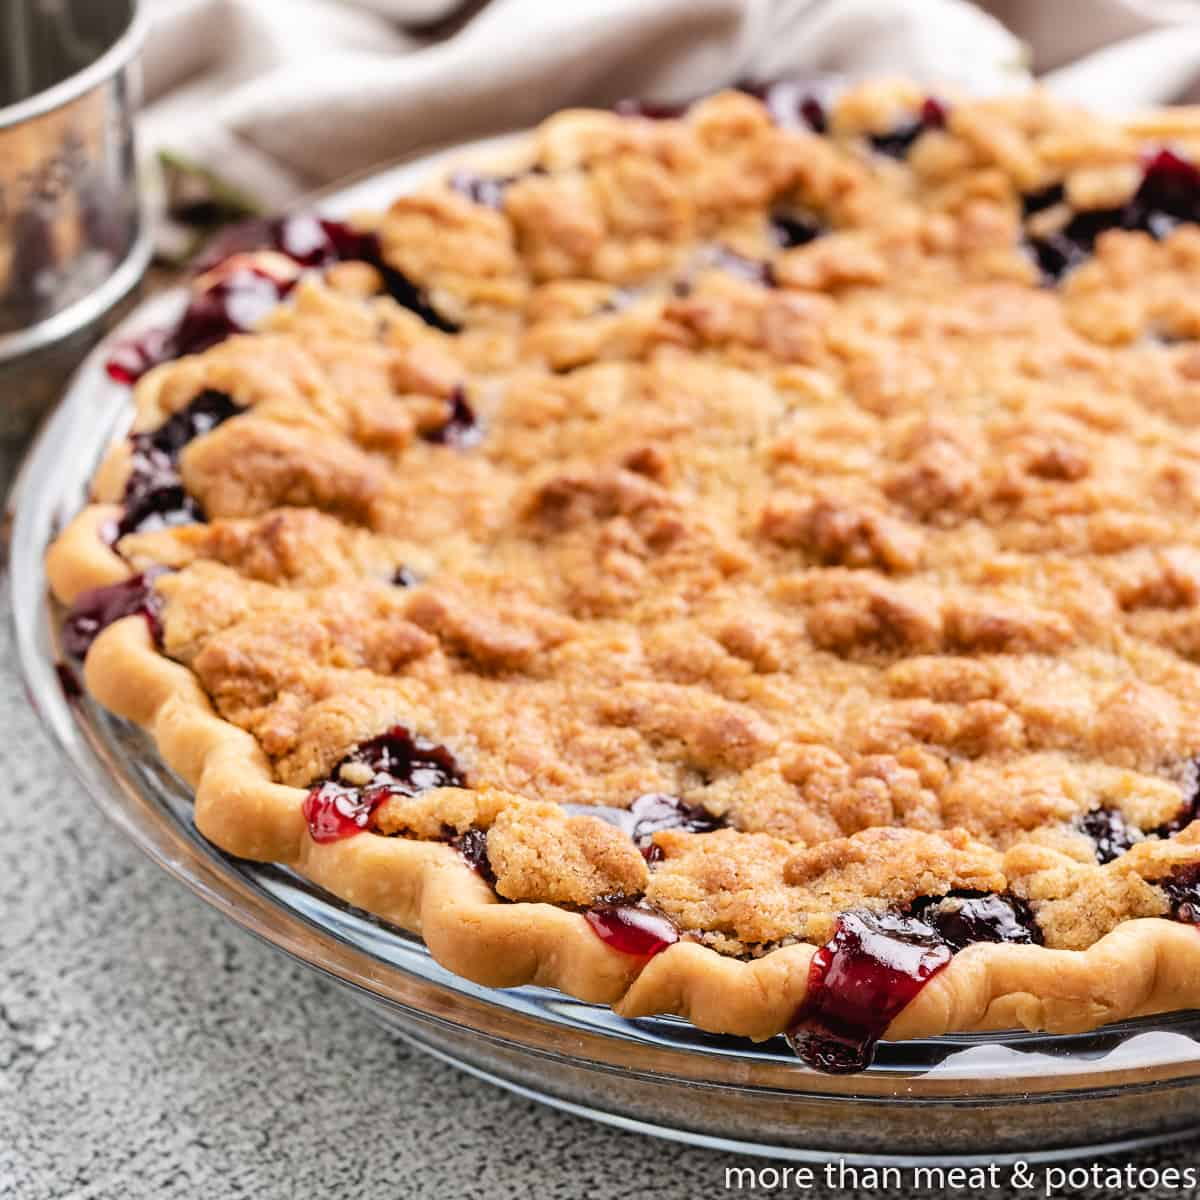 The fresh baked cherry pie with crumb topping cooling.